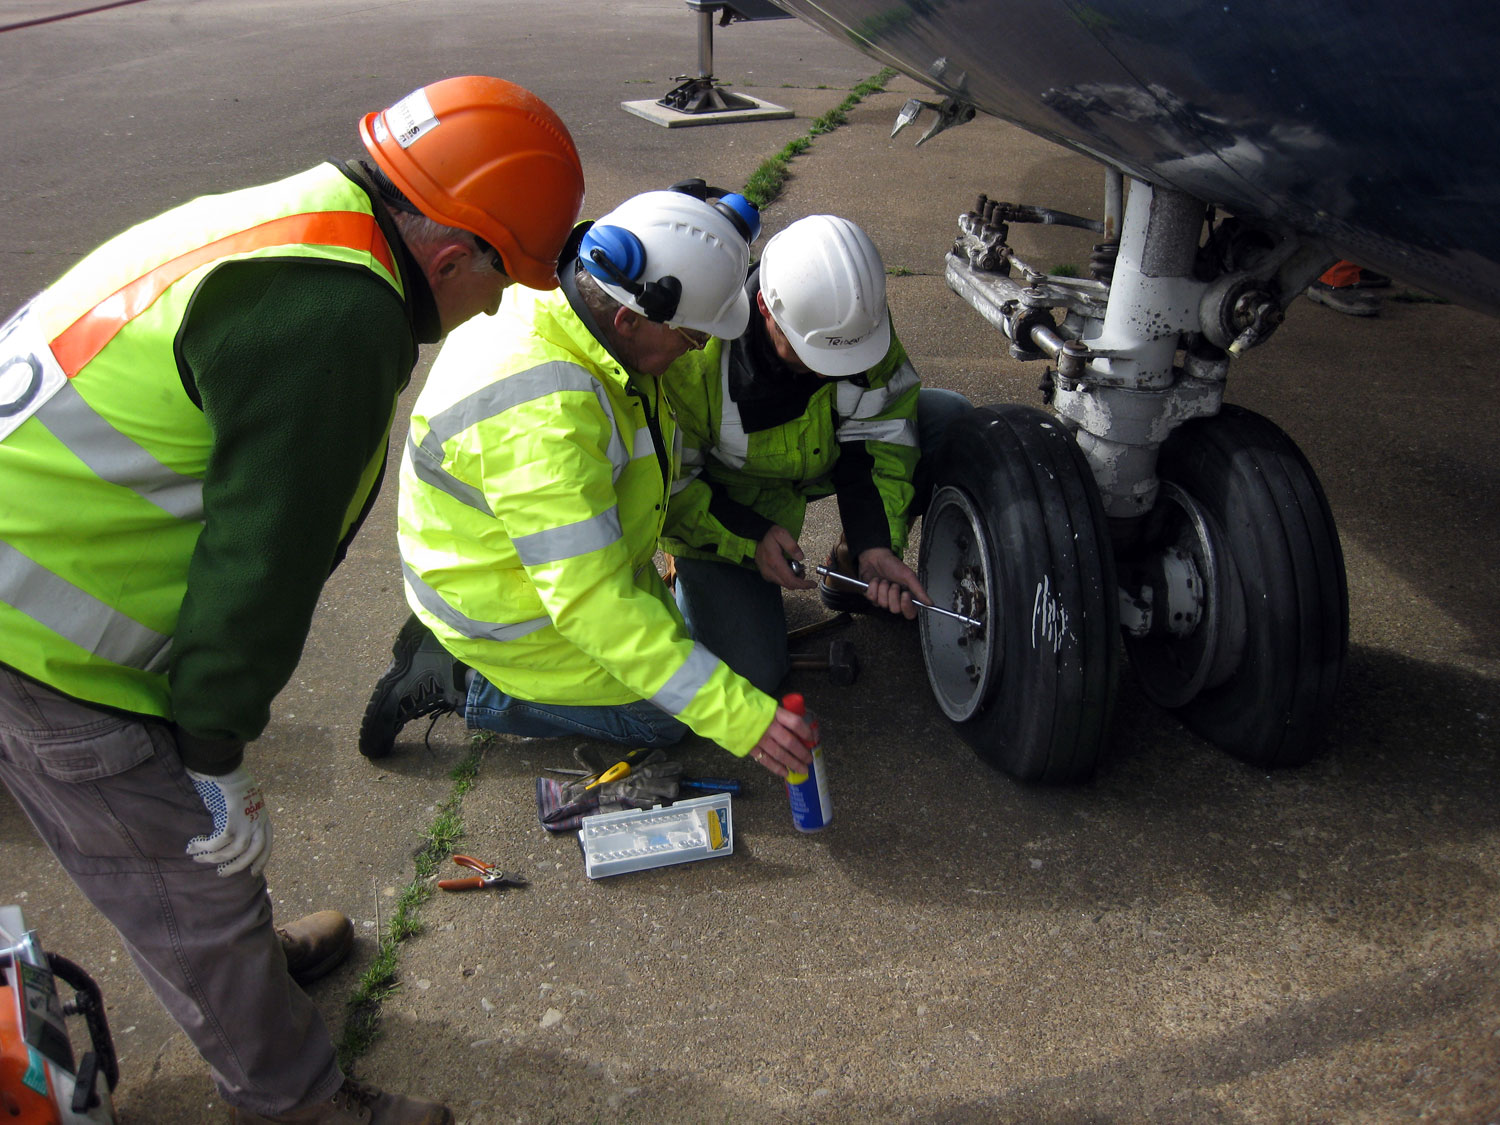 Preparing the nosewheel for removal.